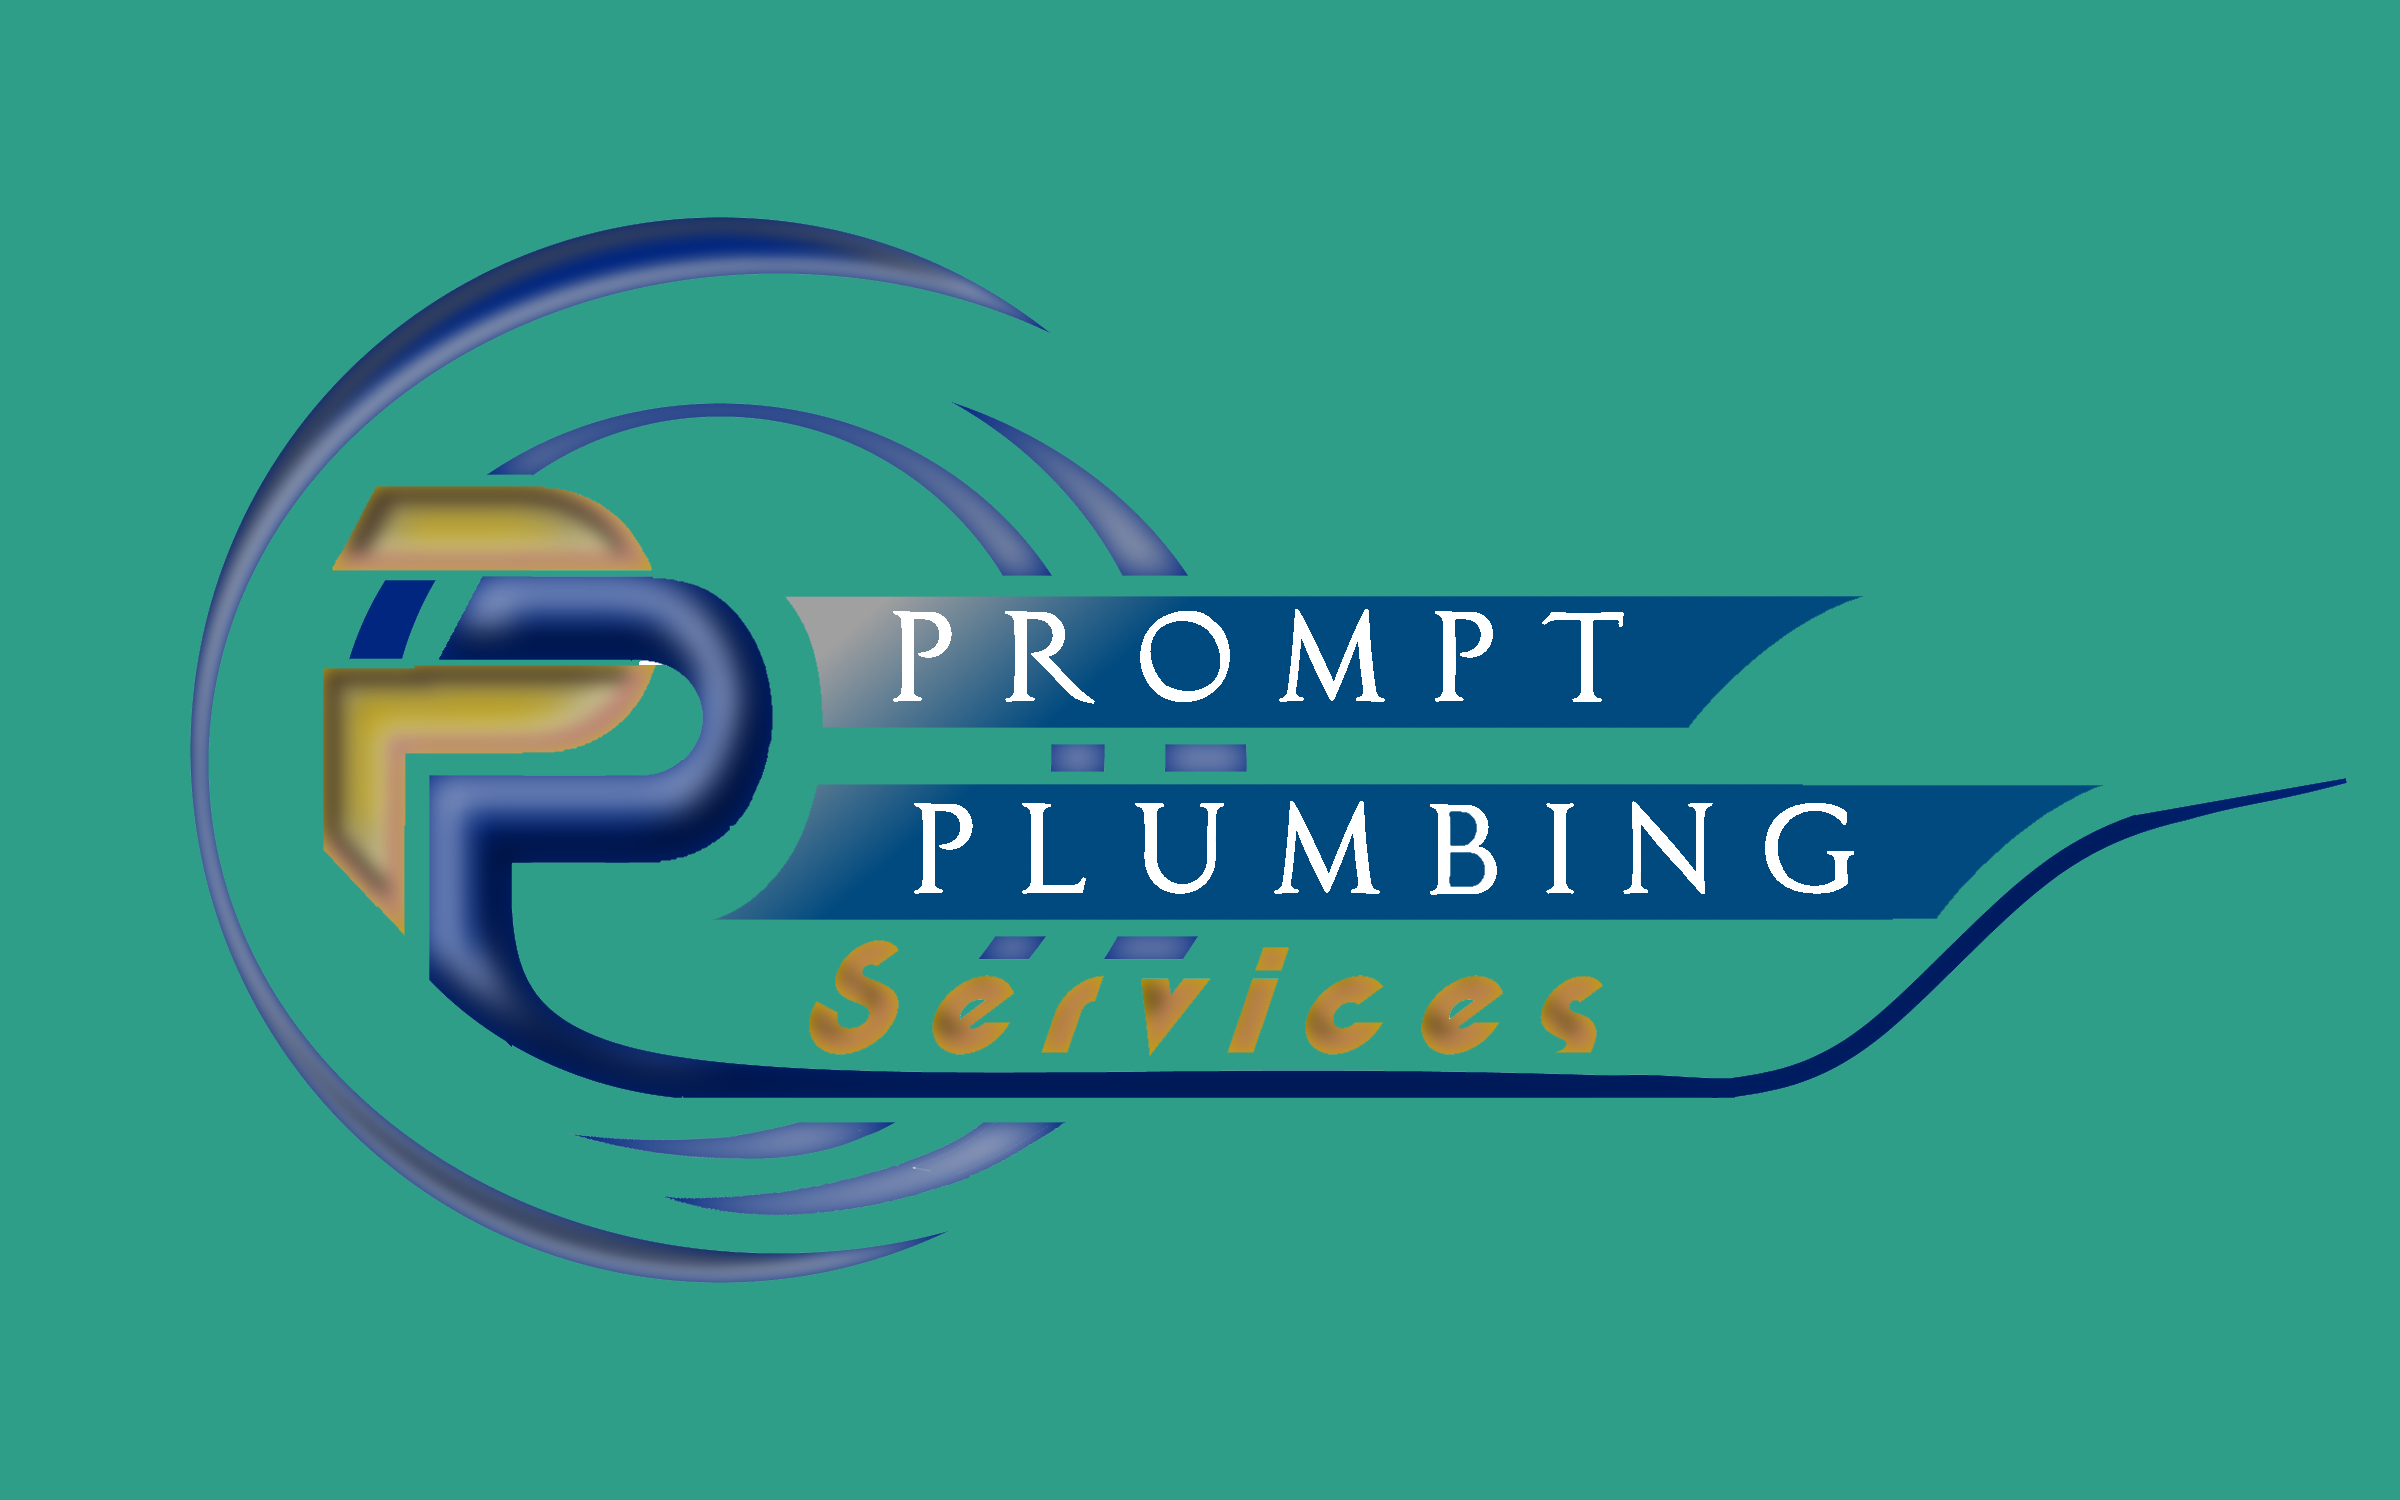 Logo Design by Roberto Bassi - Entry No. 56 in the Logo Design Contest Artistic Logo Design for Prompt Plumbing Services.